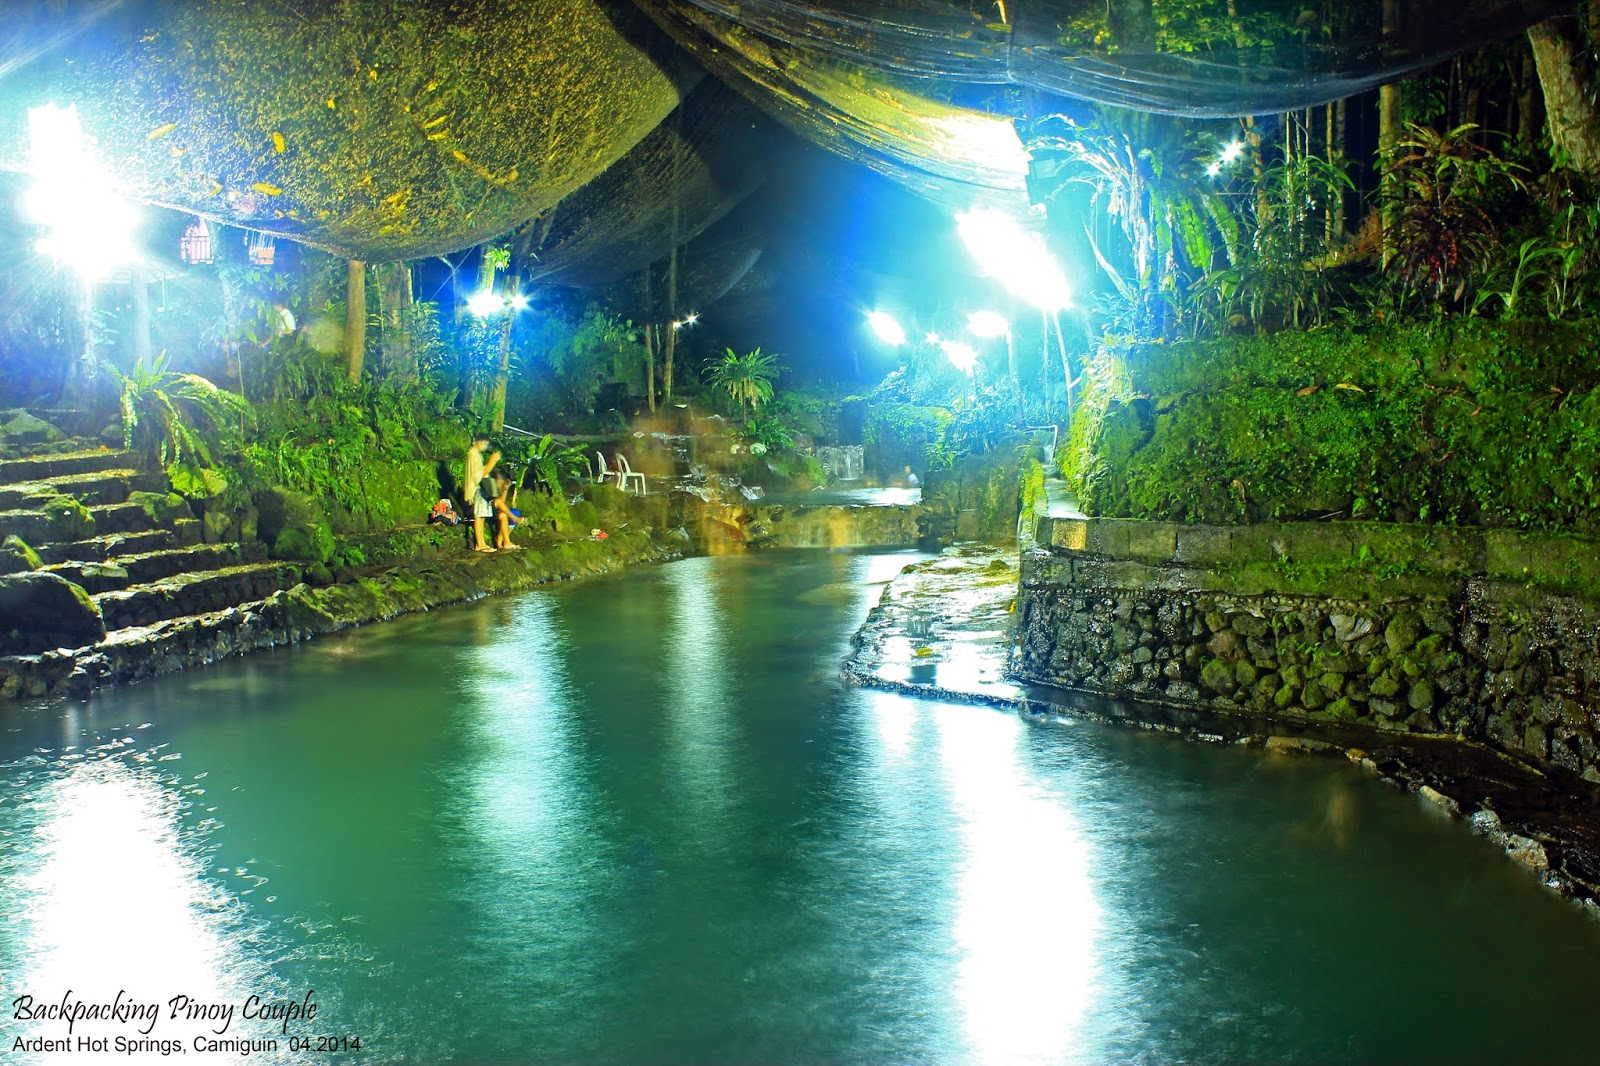 Backpacking Pinoy Couple, Backpacking Philippines, Northern Mindanao, Philippine travel, Camiguin, How to go to Camiguin, Ardent Hot Springs, Mount Hibok-HIbok Hot Springs, what to do in camiguin, where to go in camiguin